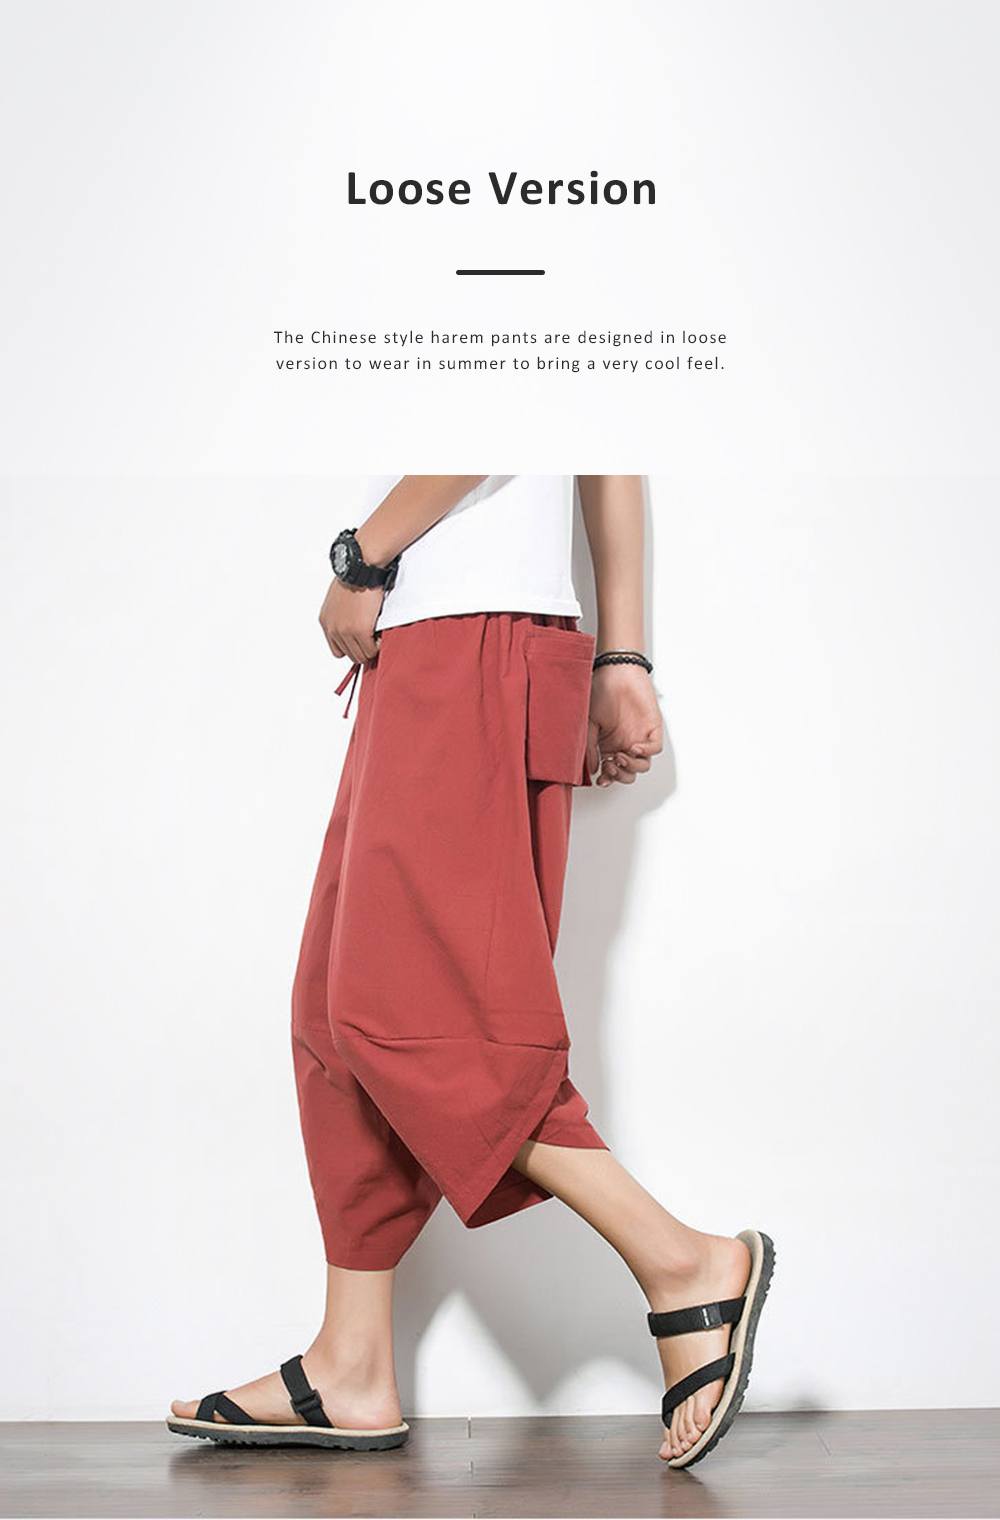 Mid-rise Loose Version Hip Pants Large Size Cropped Trousers for Men Wear Summer Casual Stylish Loose Pants 4